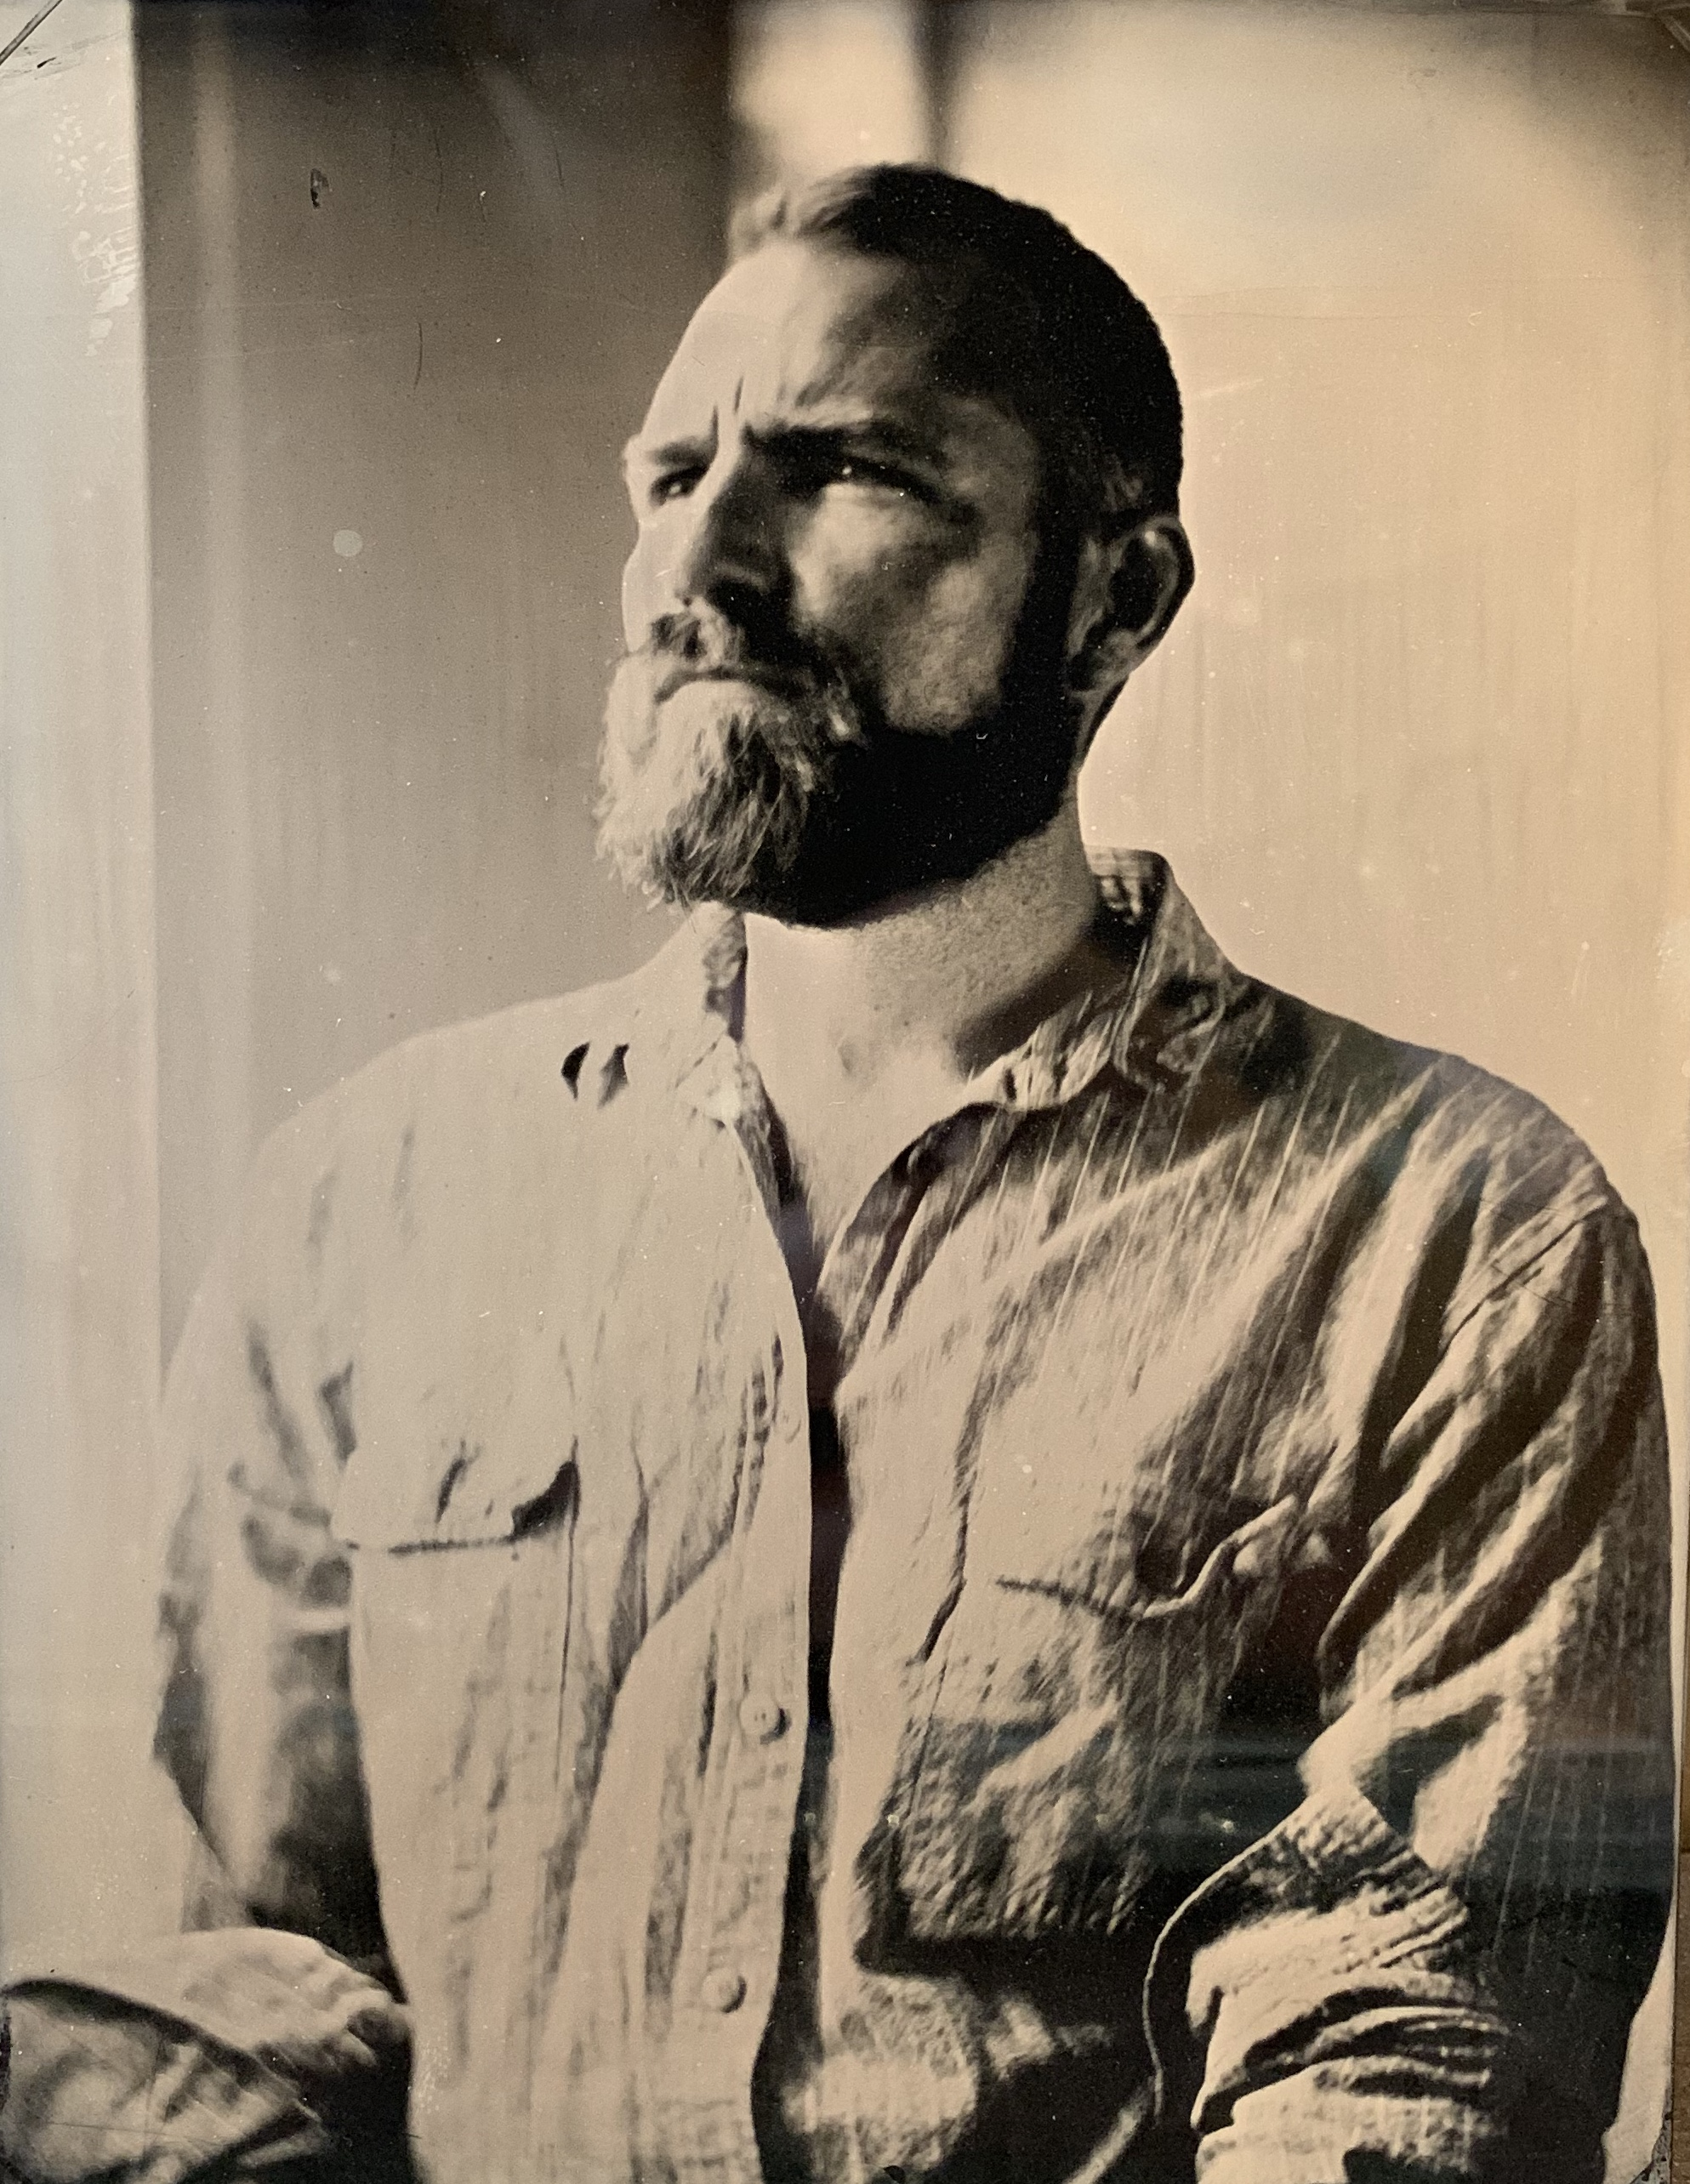 Portrait of the artist, by Craig Tuffin 2015. Tintype.